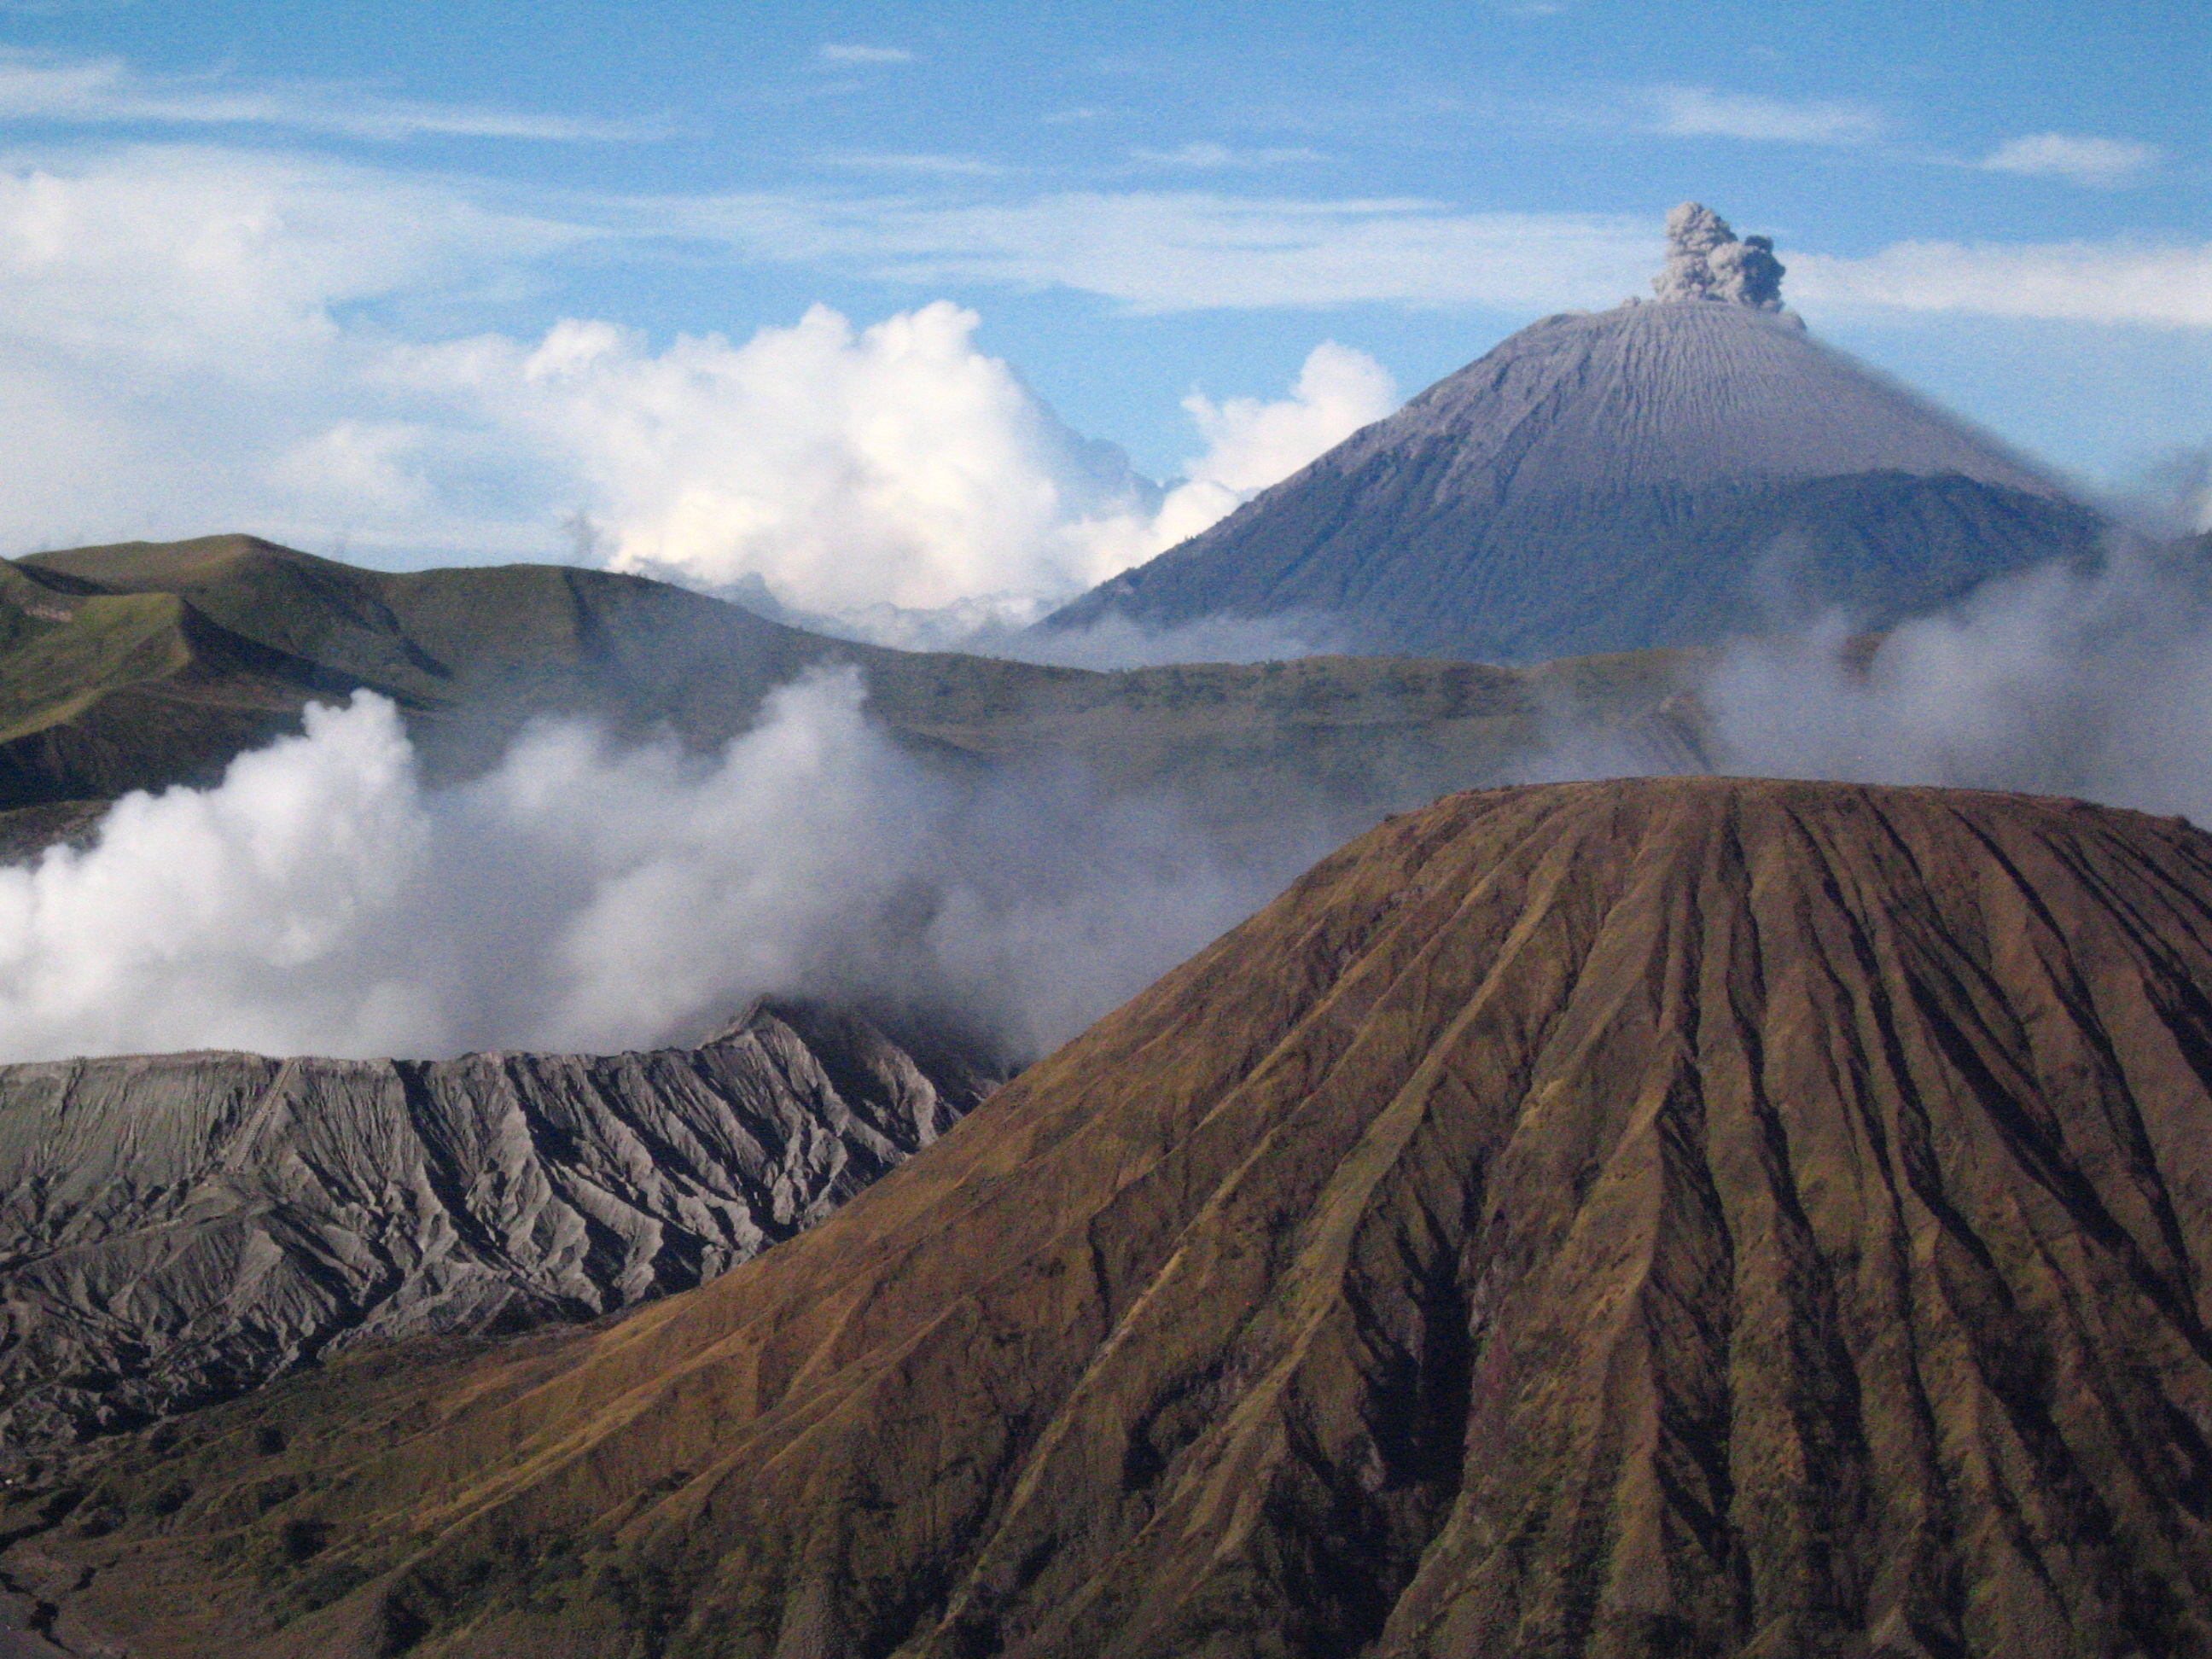 This is a sunrise view from atop Mt. Pananjakan in Java, Indonesia. Clockwise from lower left is the steaming crater of Mt. Bromo, erupting Mt. Semeru, and the stately Mt. Batok.